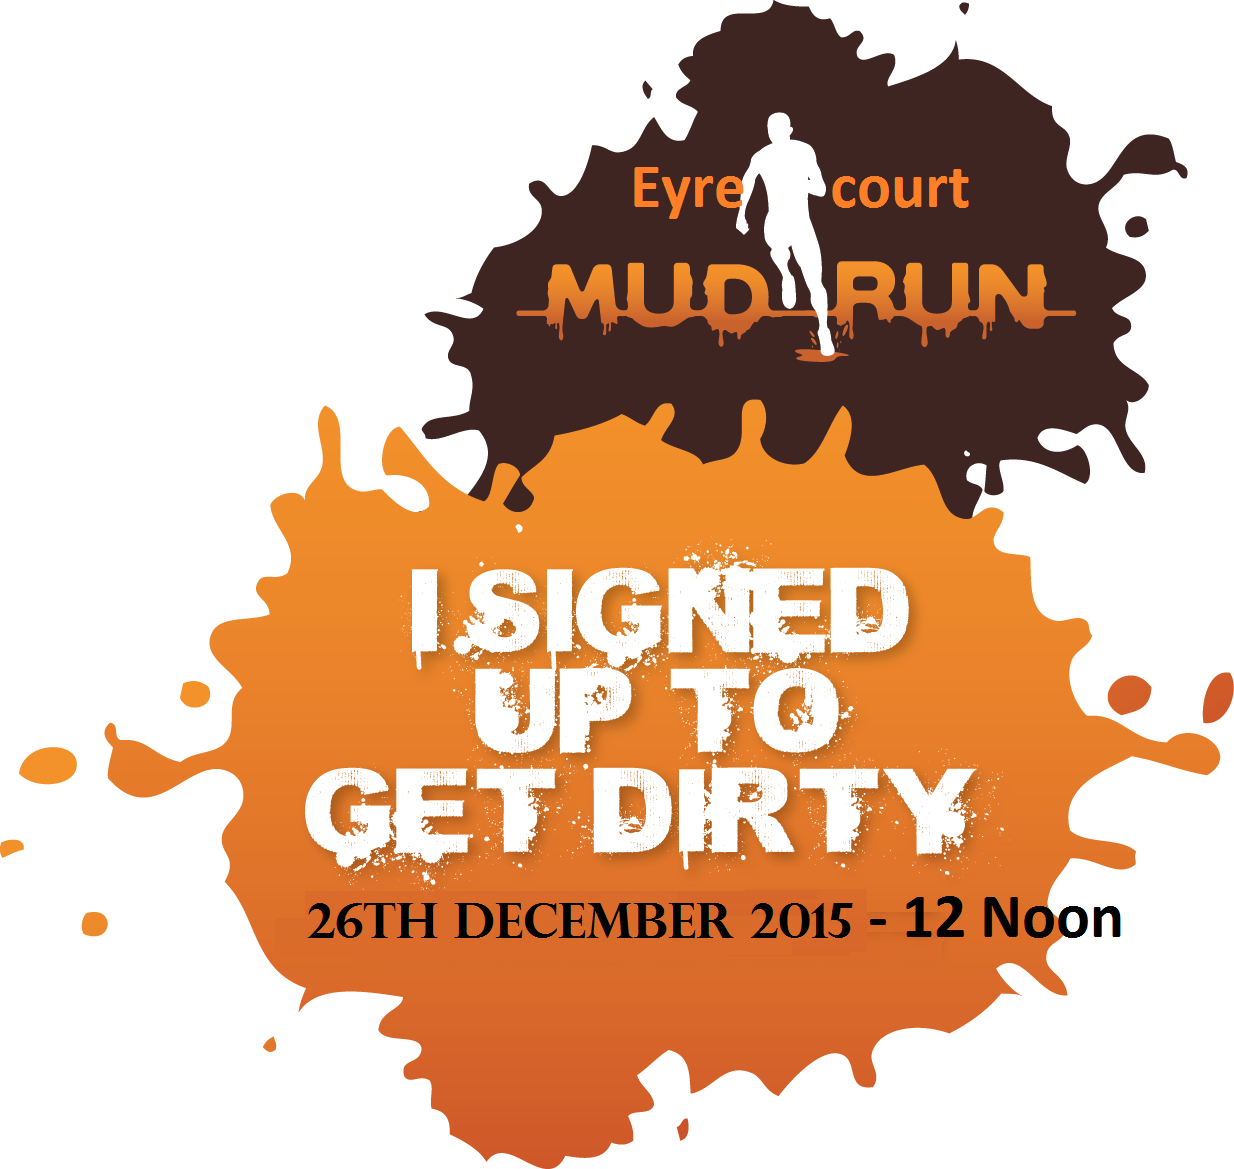 Eyrecourt Mud Run